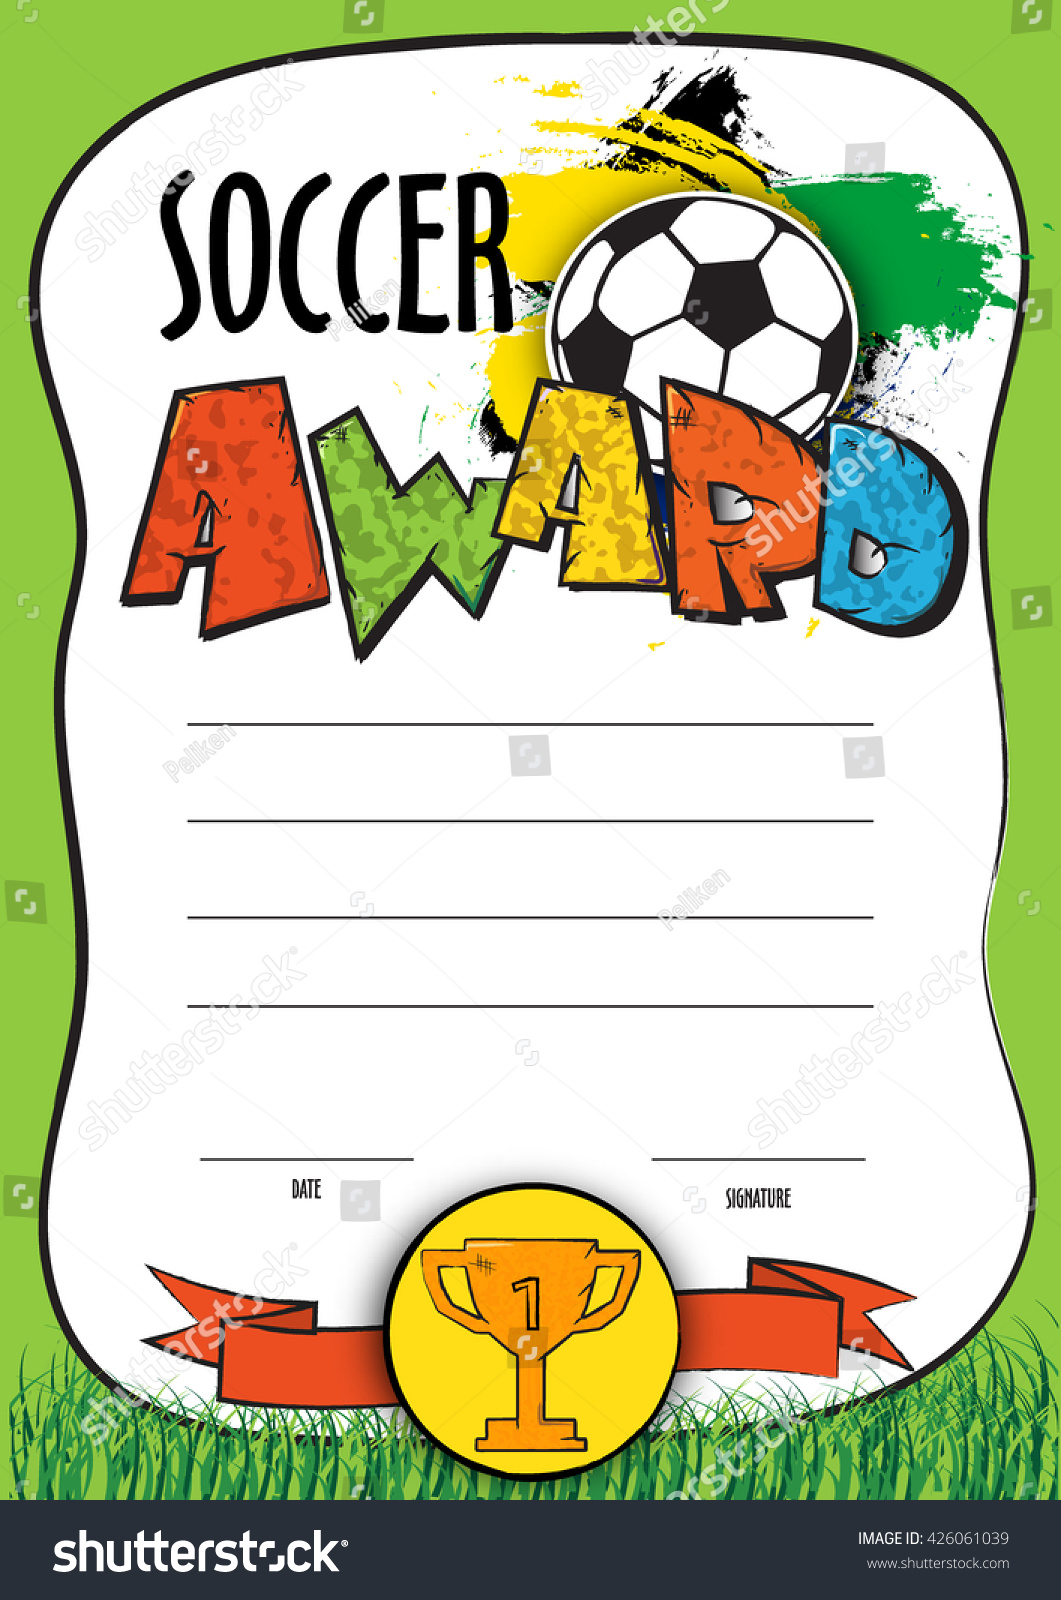 Soccer certificate template explore christina johnsons board awards certificates on pinterest soccer certificate of most valuable player certificate award template xflitez Choice Image